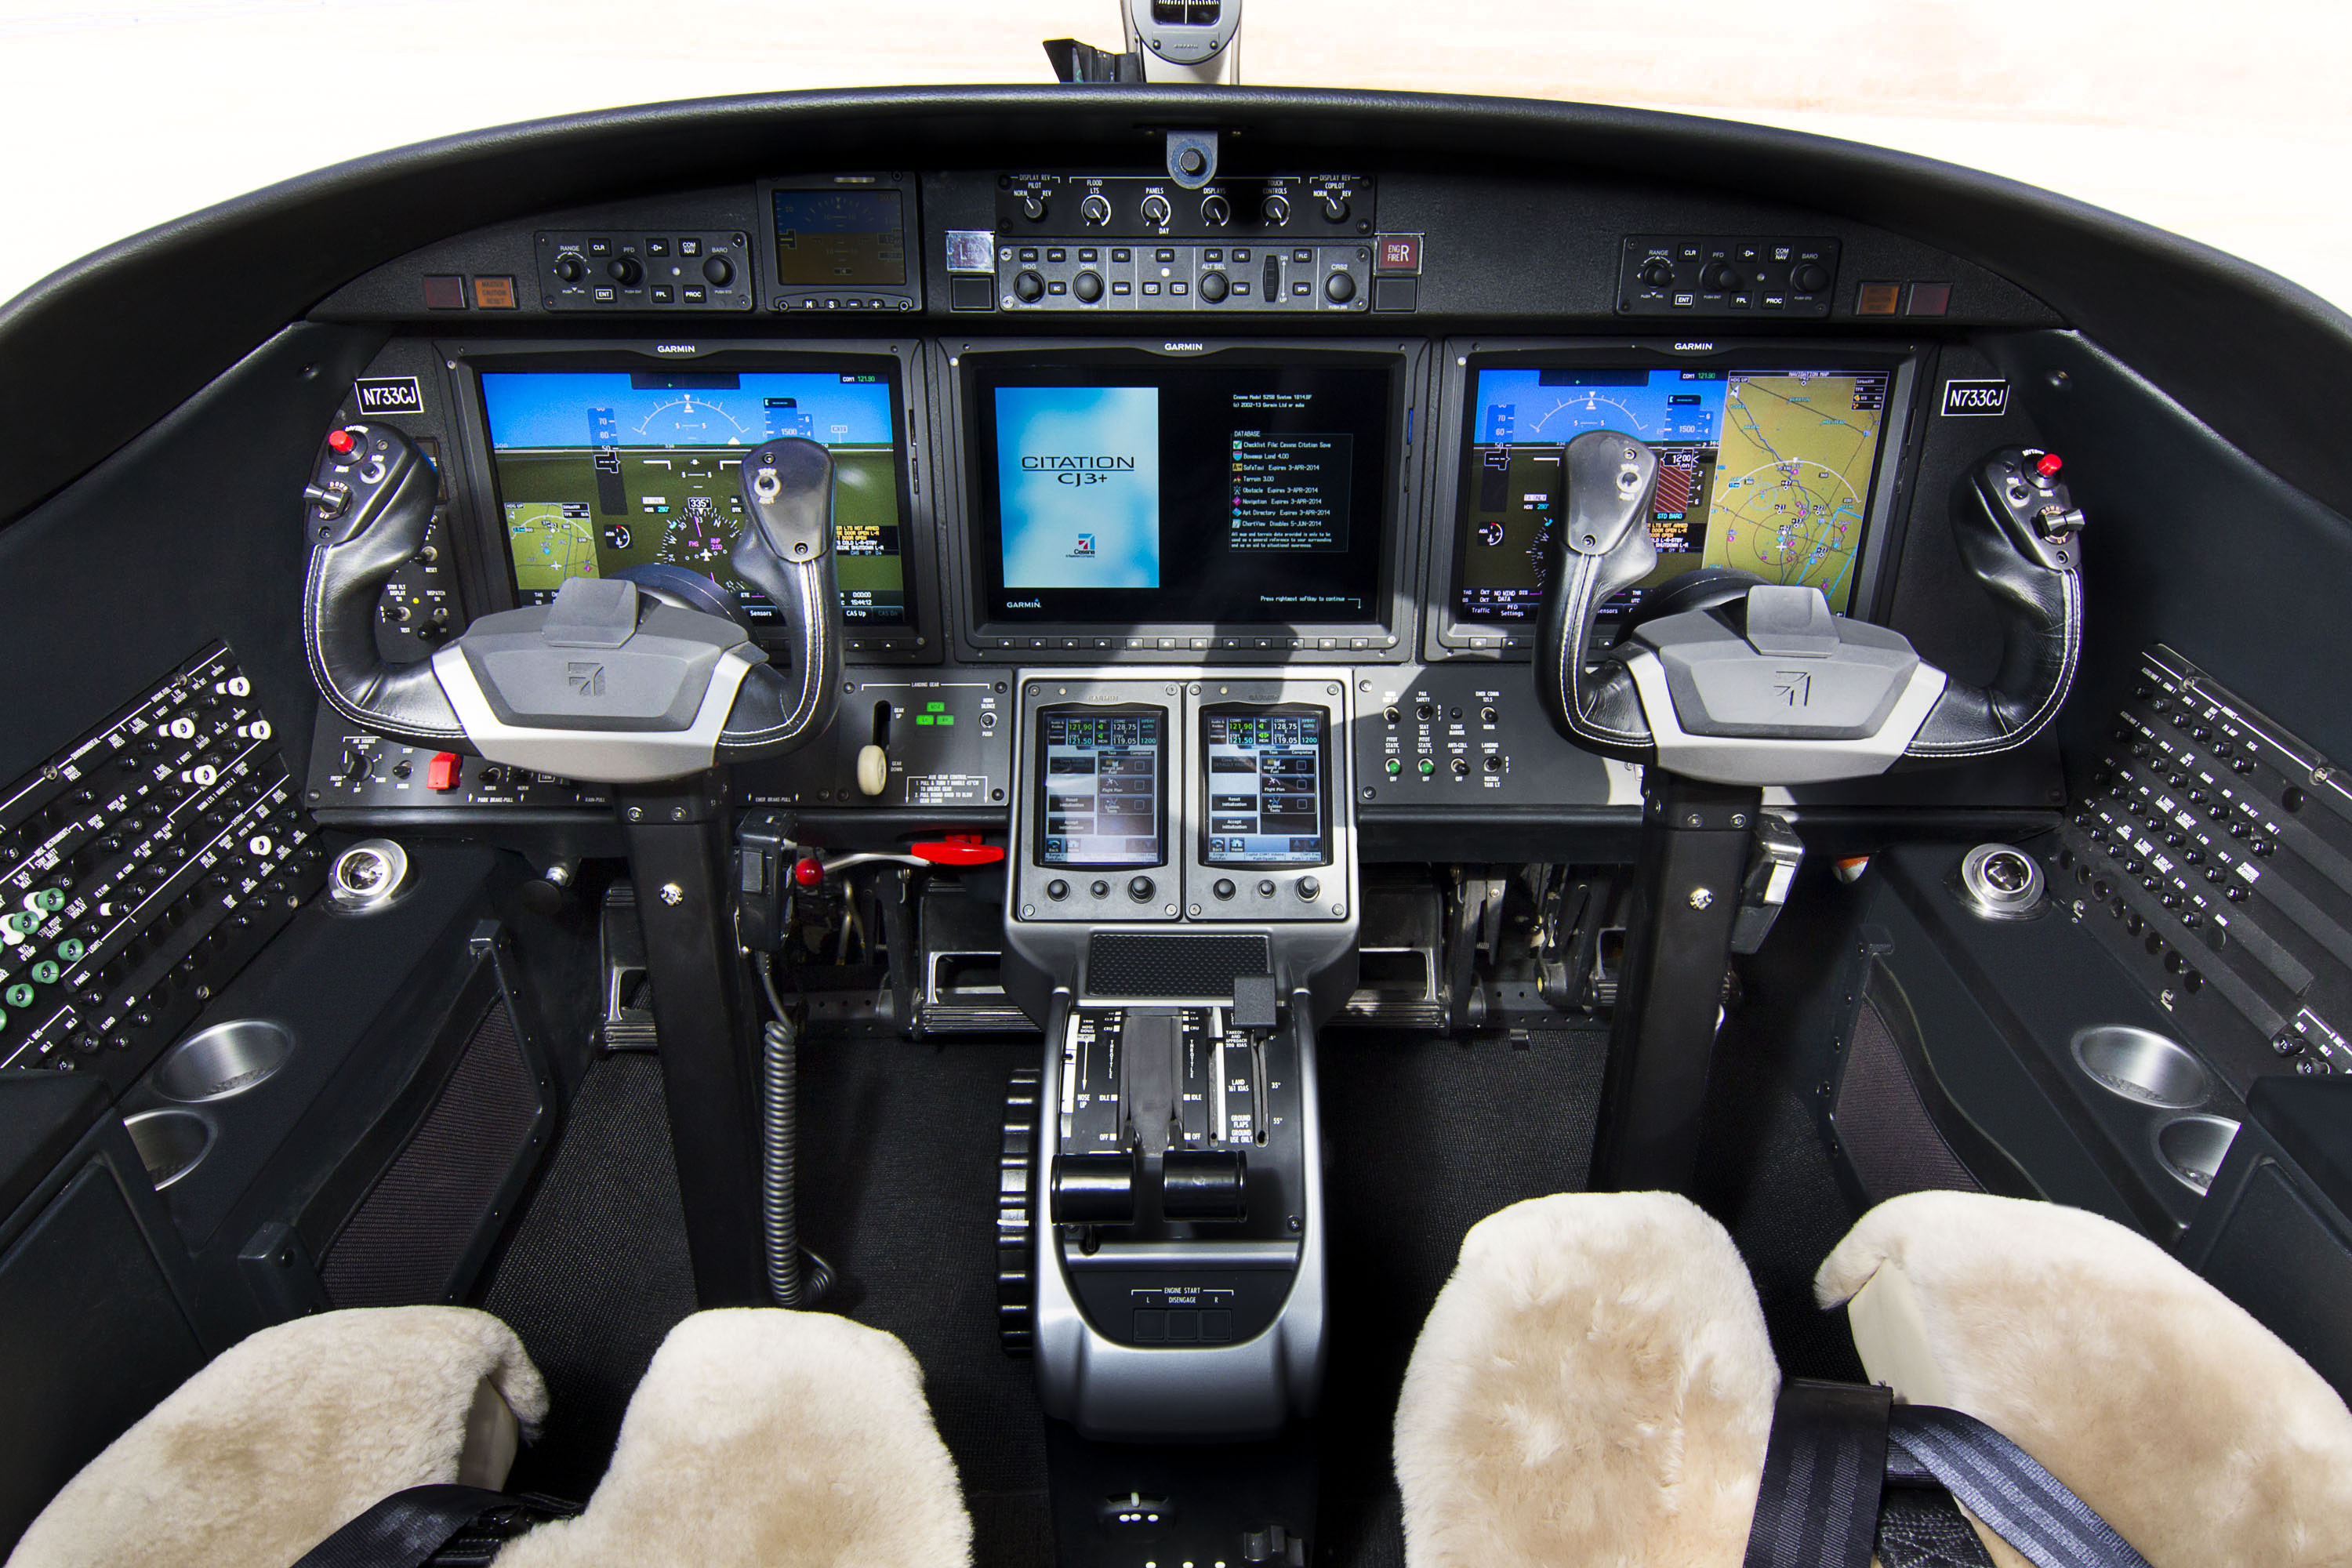 http://txtav.com/-/media/textron-aviation/images/news-events/media-gallery/jets/citation-cj3/czry_mg_1880-final.ashx